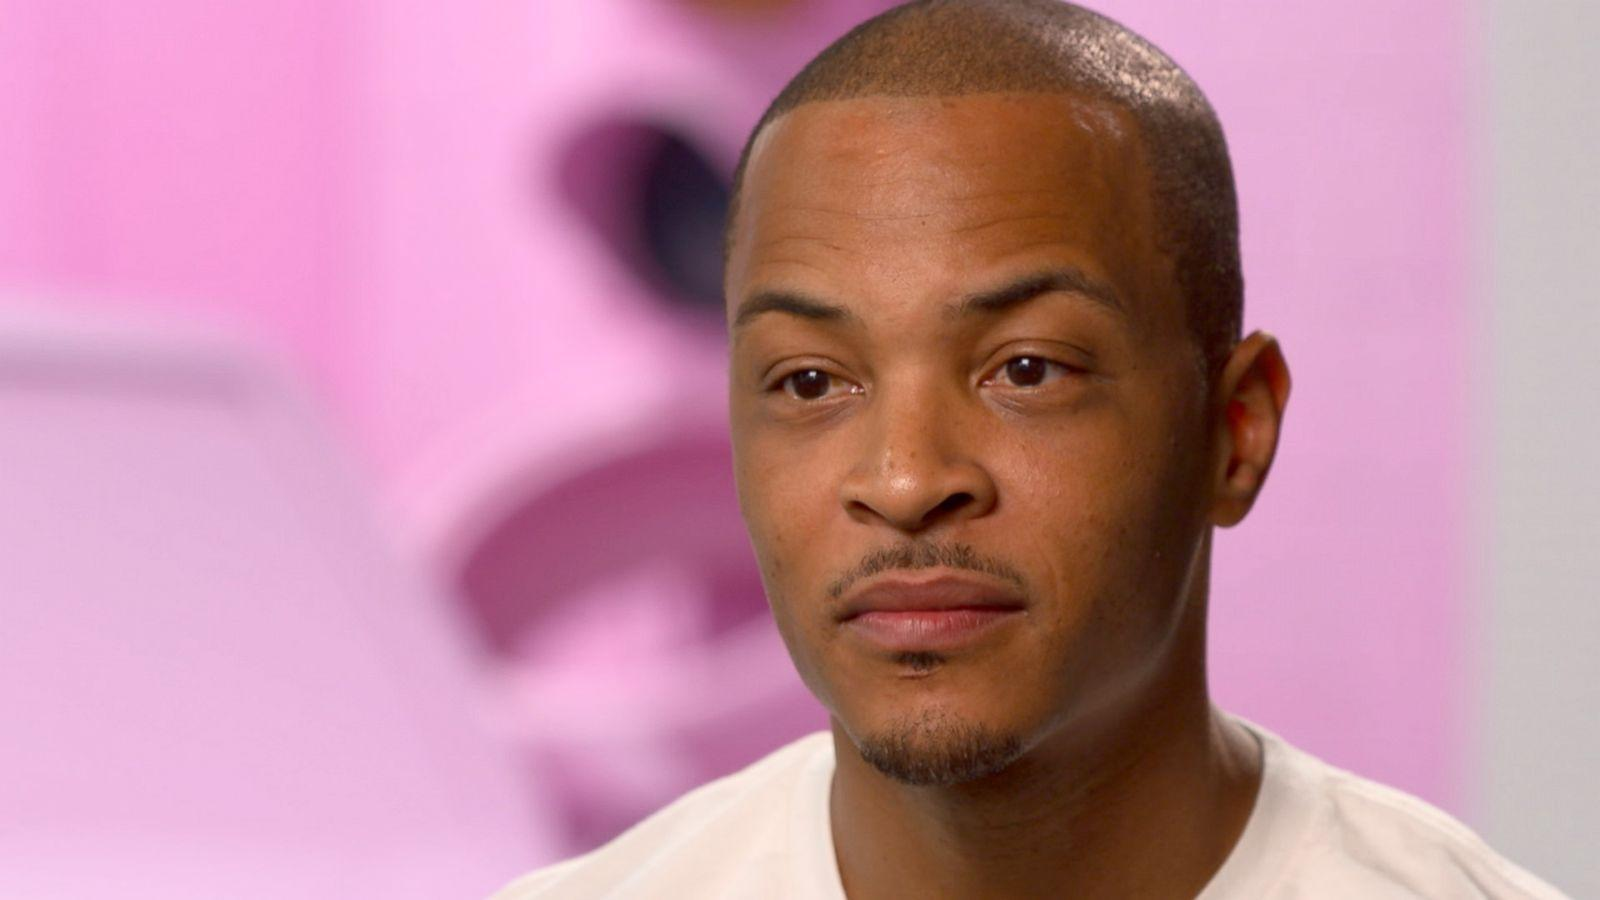 T.I.'s Fans Are Going Crazy With Excitement After Seeing 'Insomnia Late Night Chronicles'